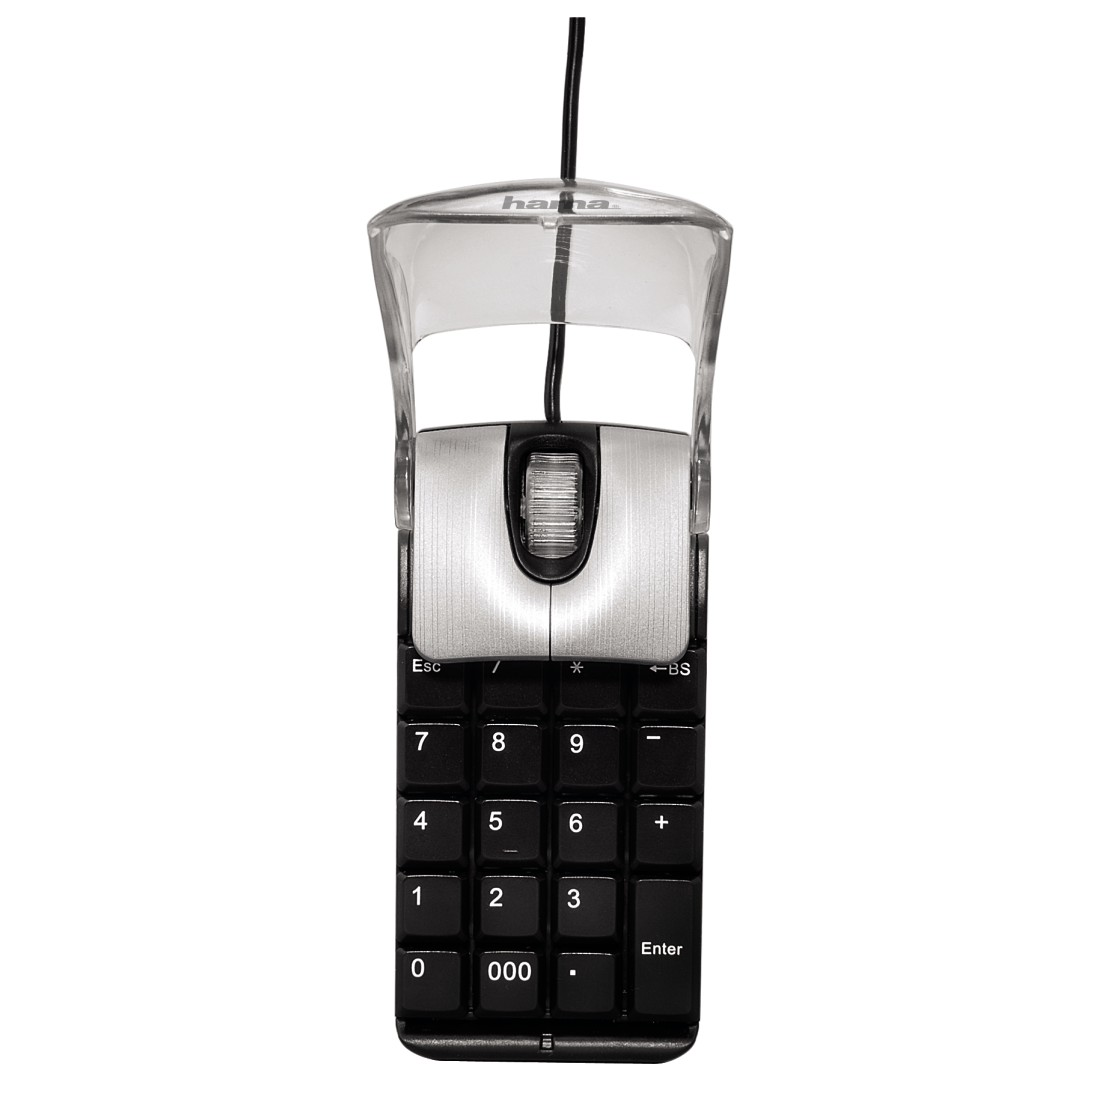 Drivers HAMA 2in1 Mouse/Keypad